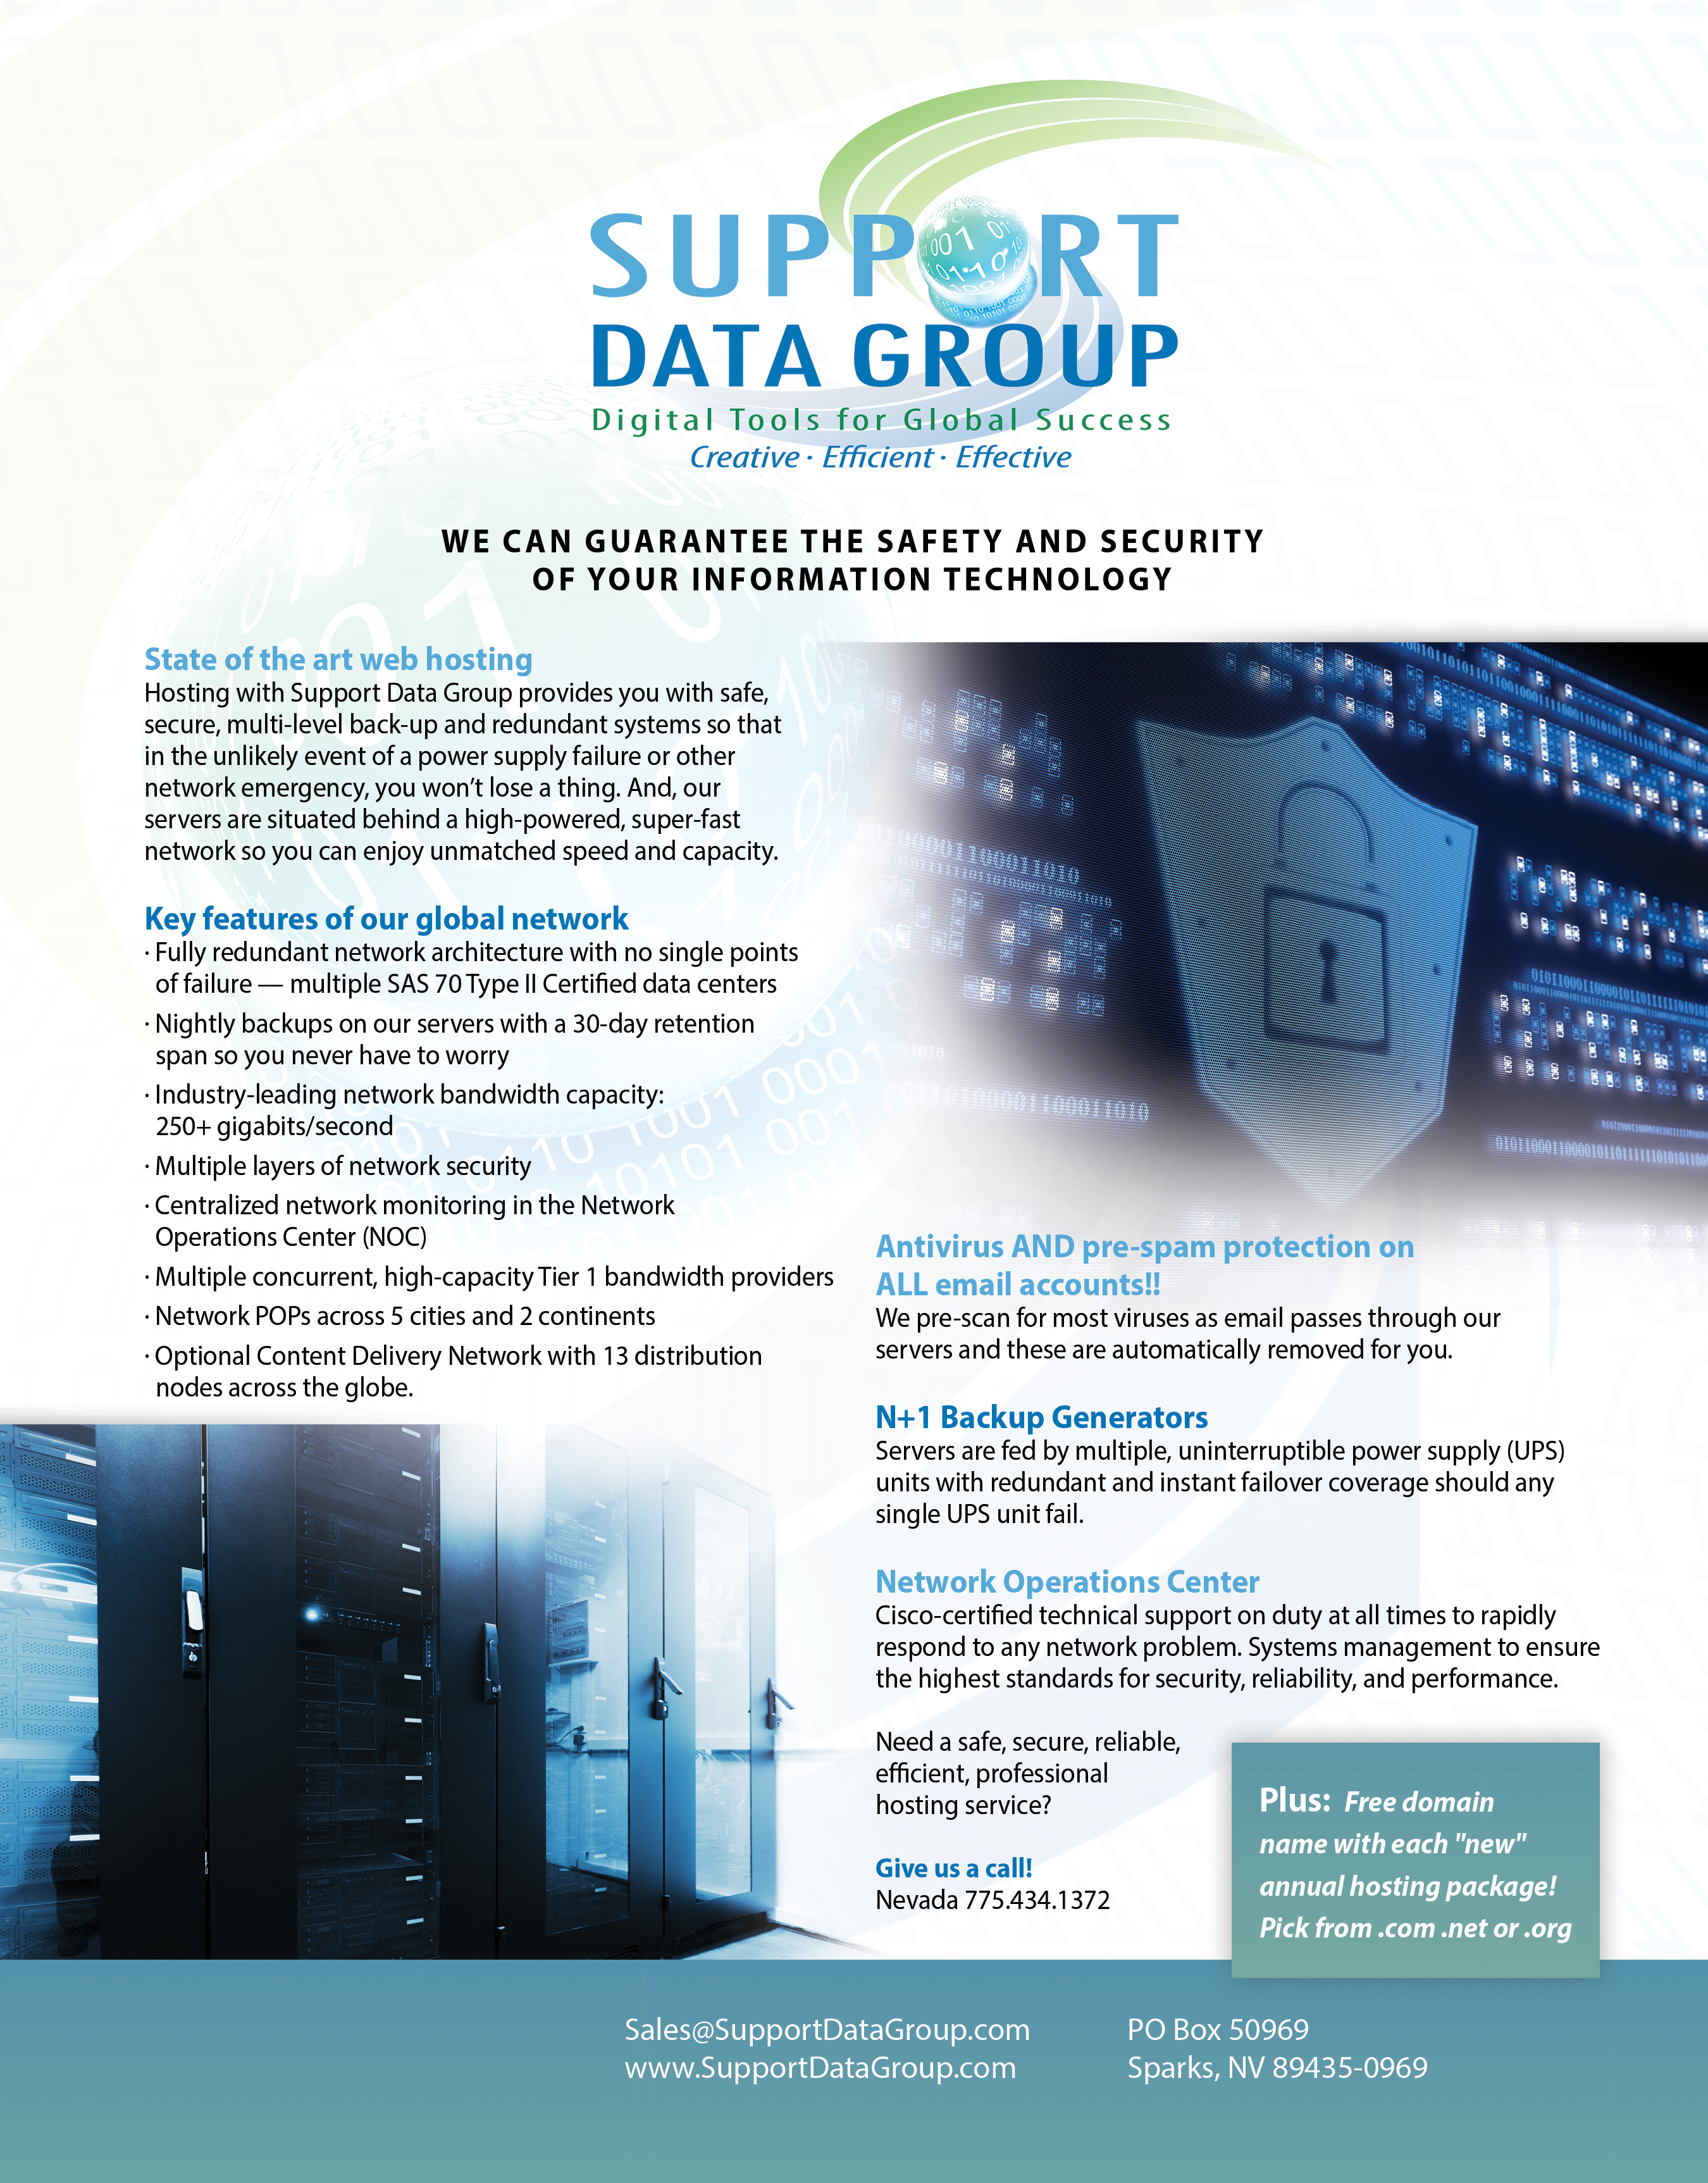 Support Data Group - Why Choose Us Printable Handouts